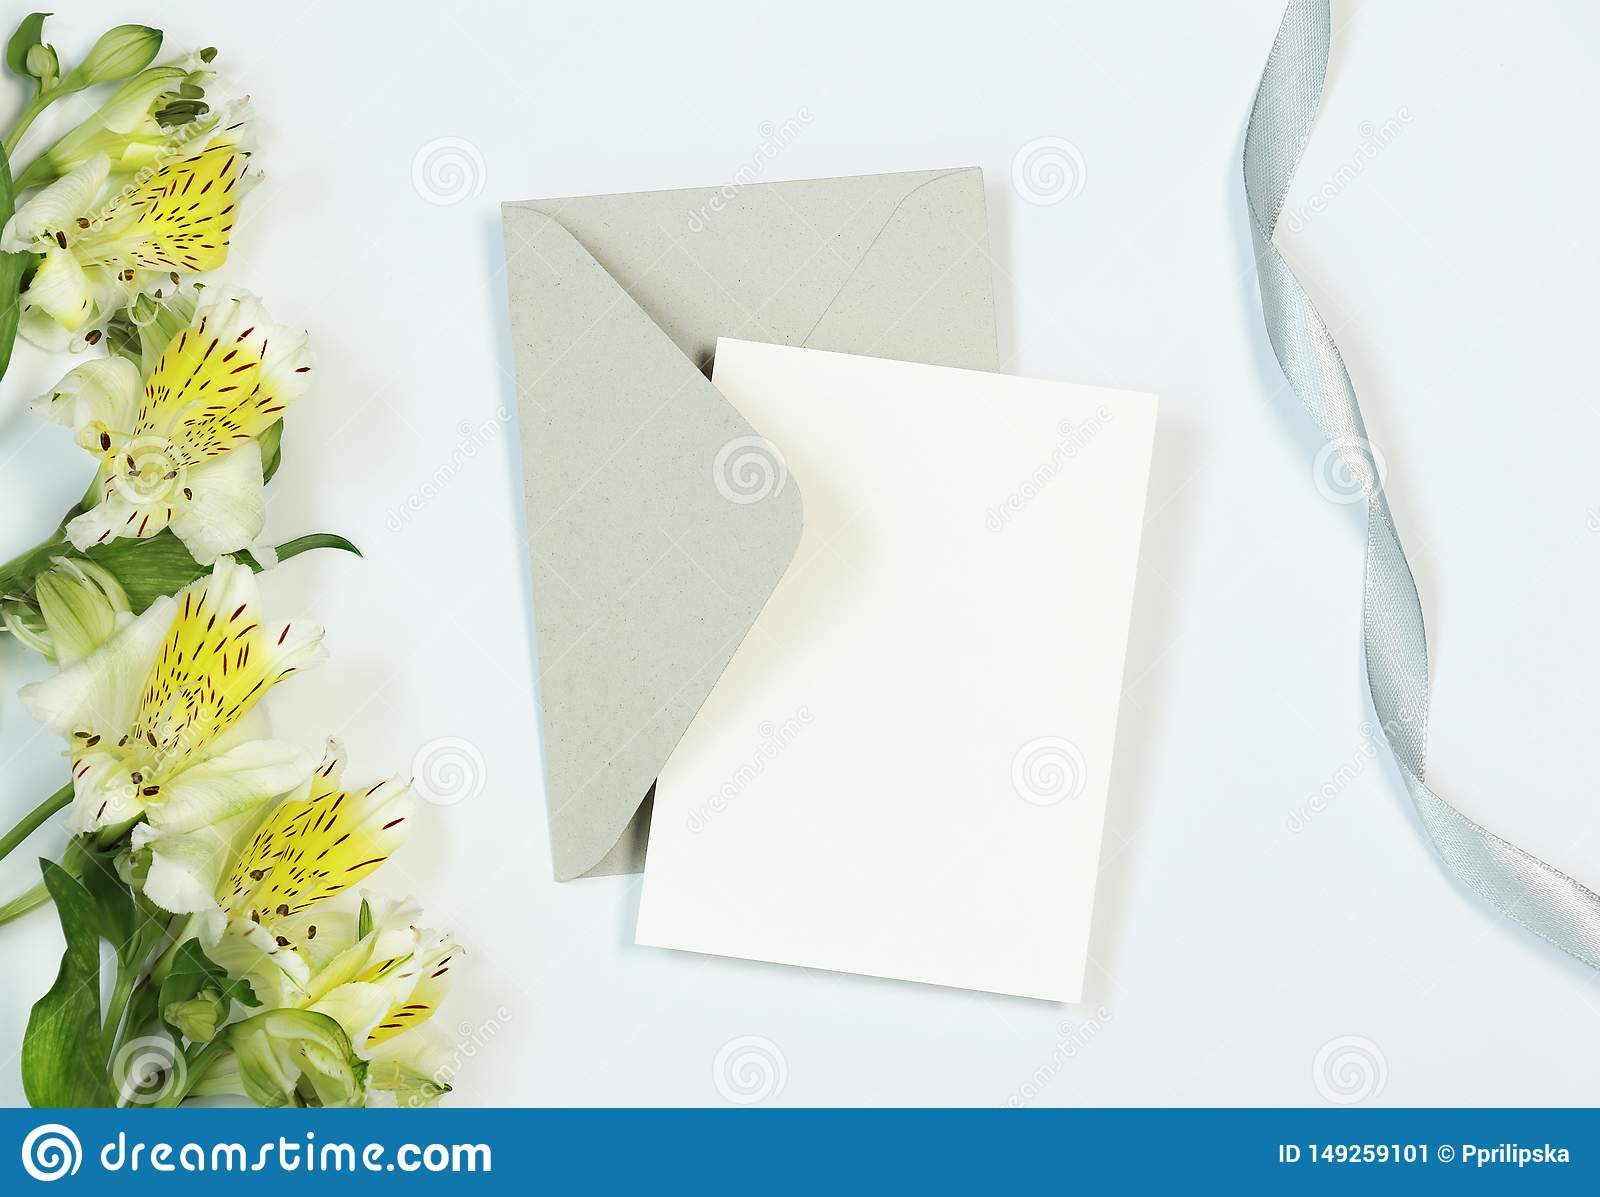 Mockup Invitation Card On White Background With Flowers